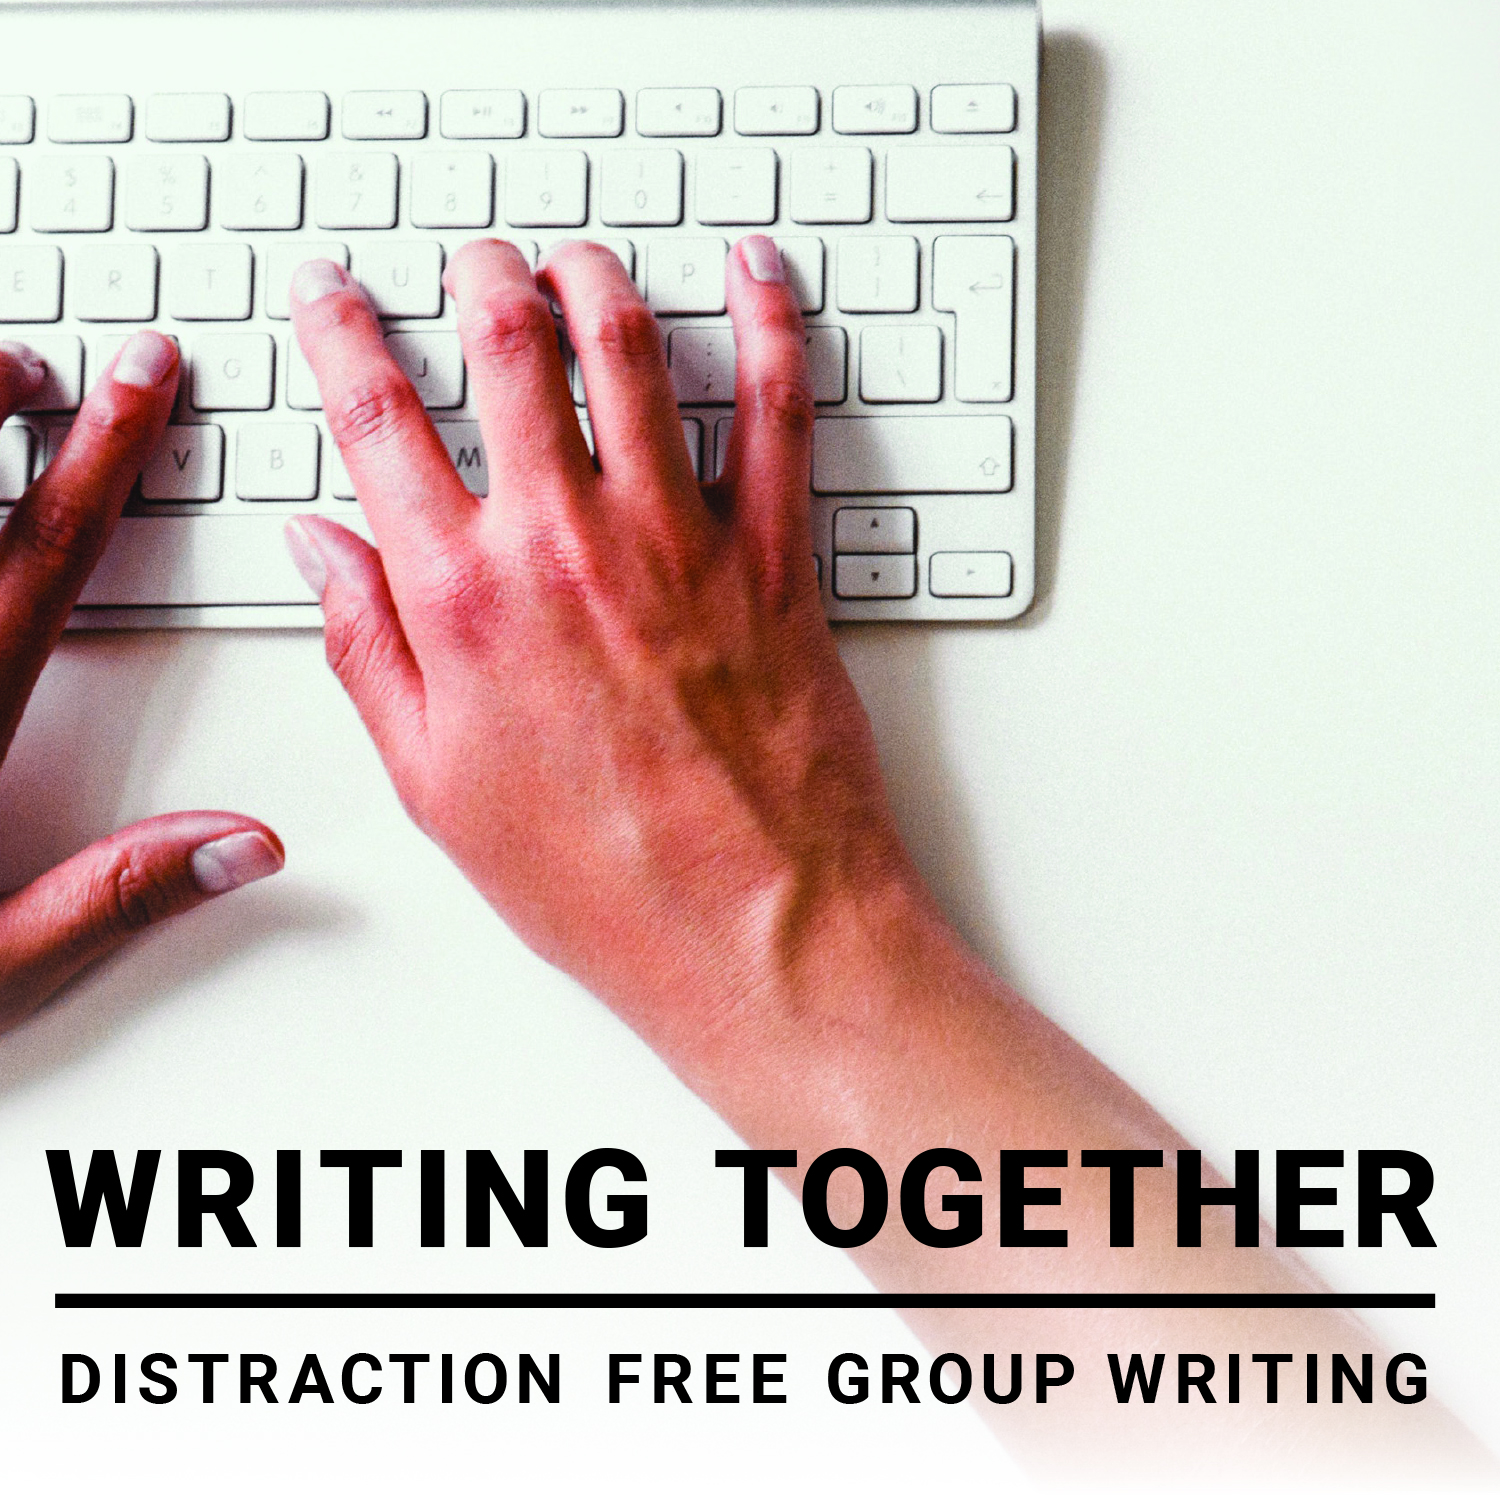 Distraction Free Group Writing